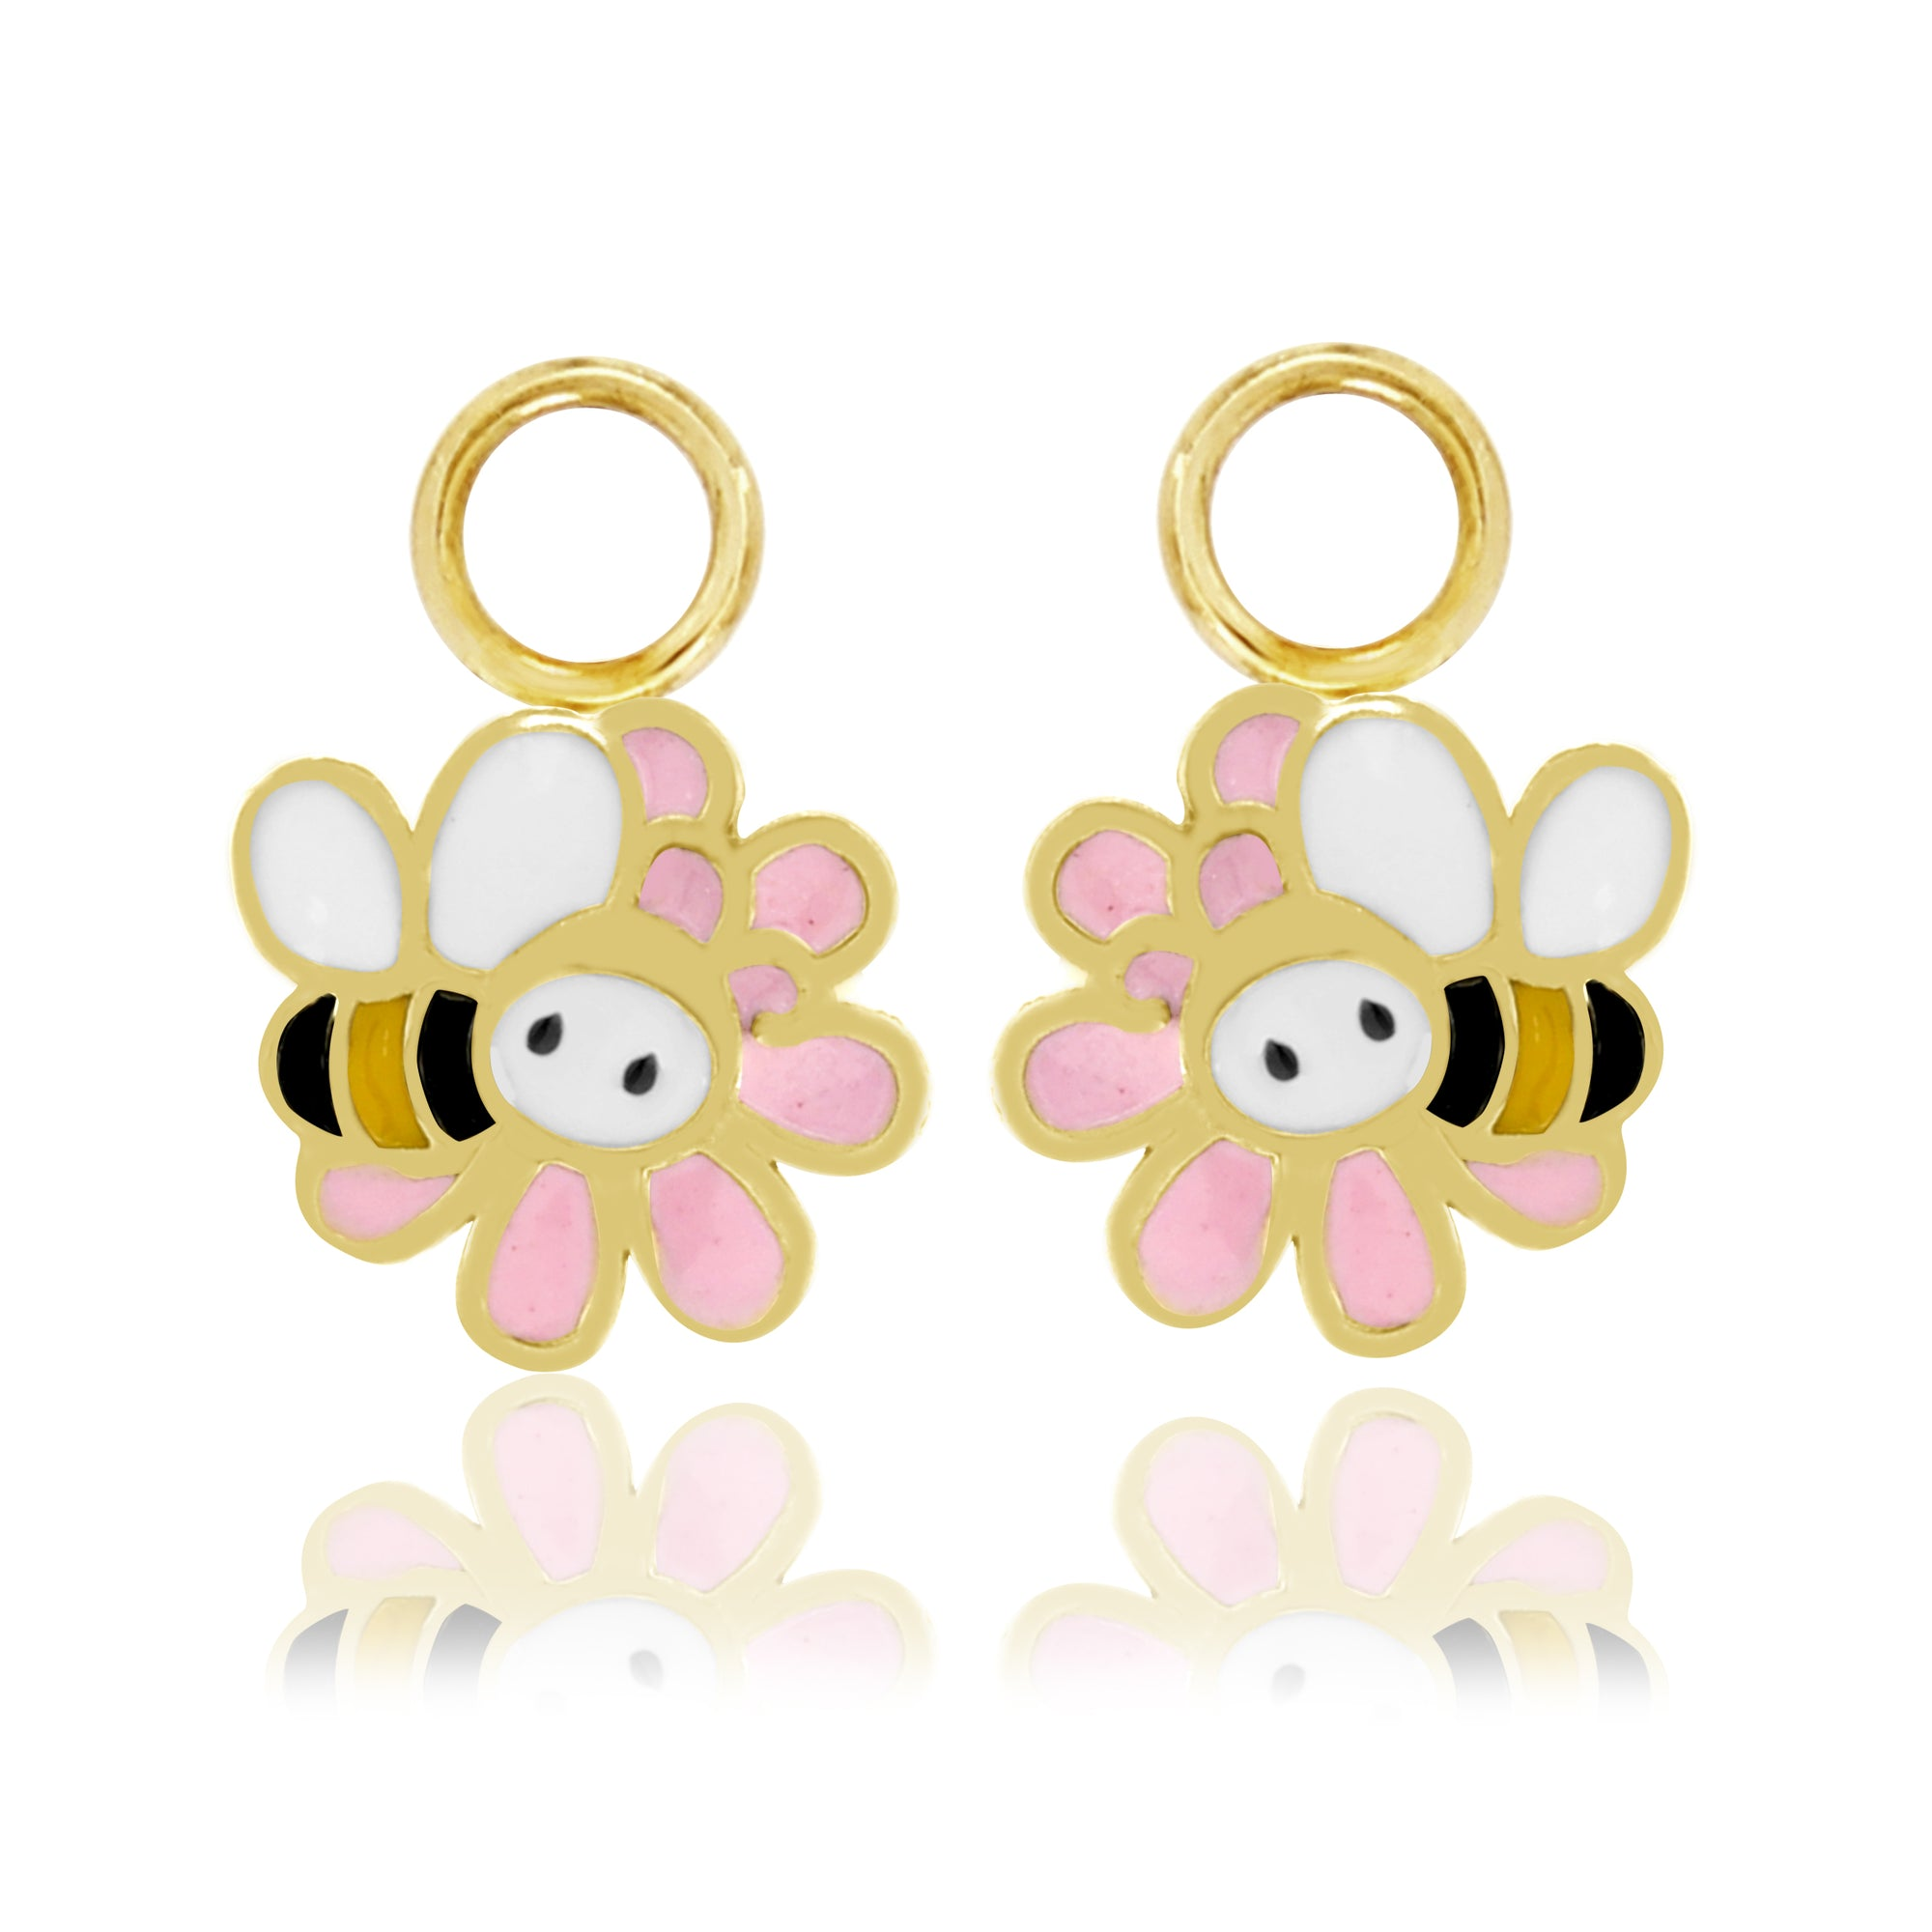 Busy Bee Charm